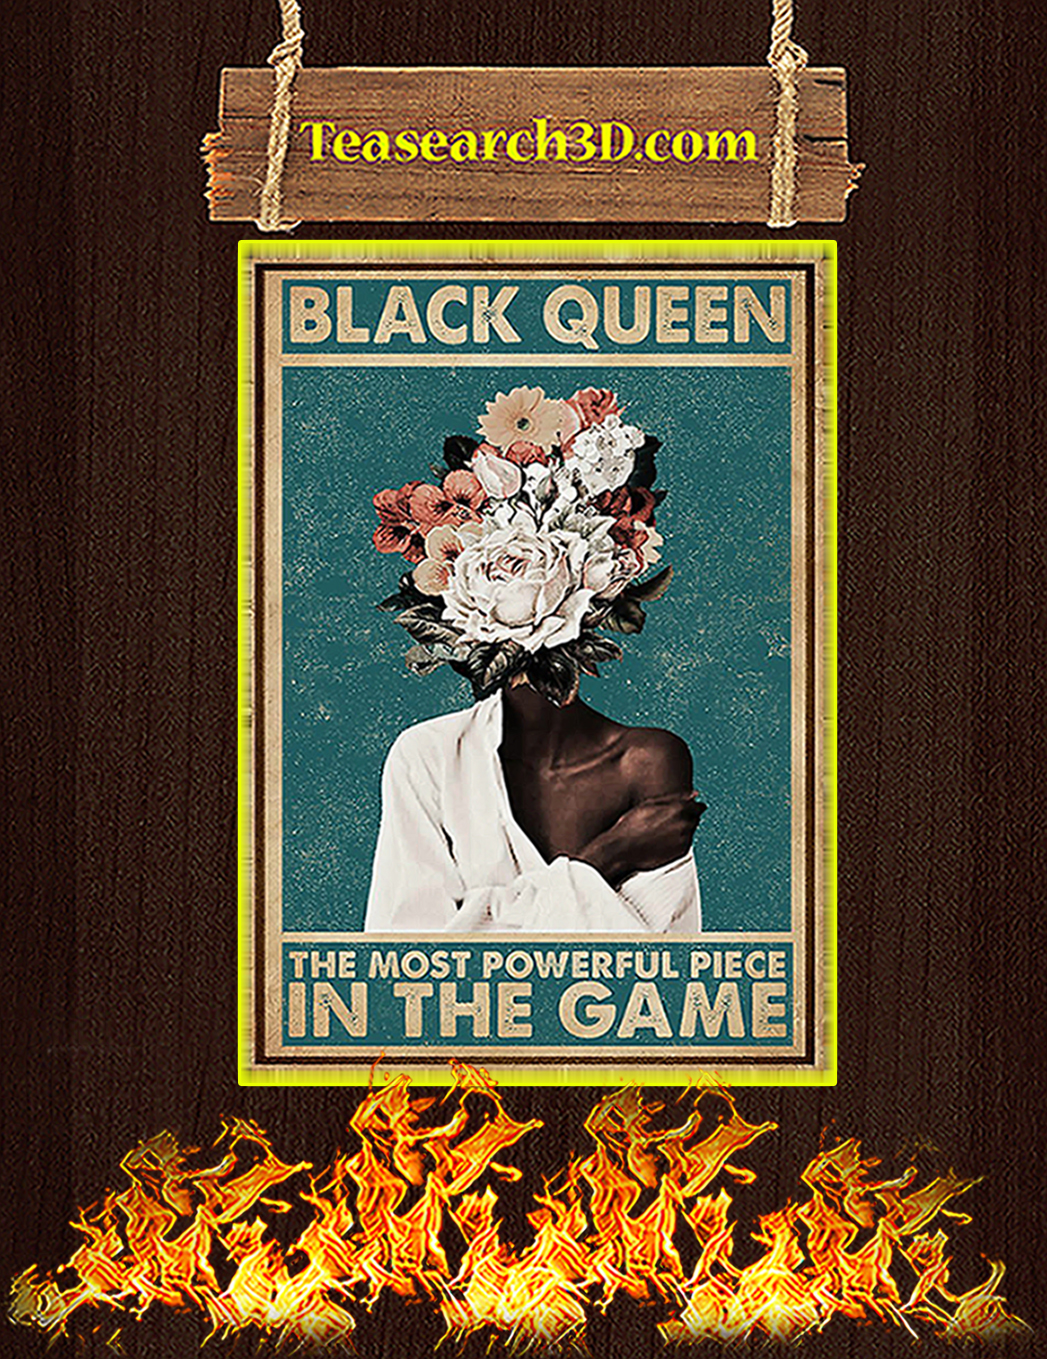 Flower black queen the most powerful piece in the game poster A1